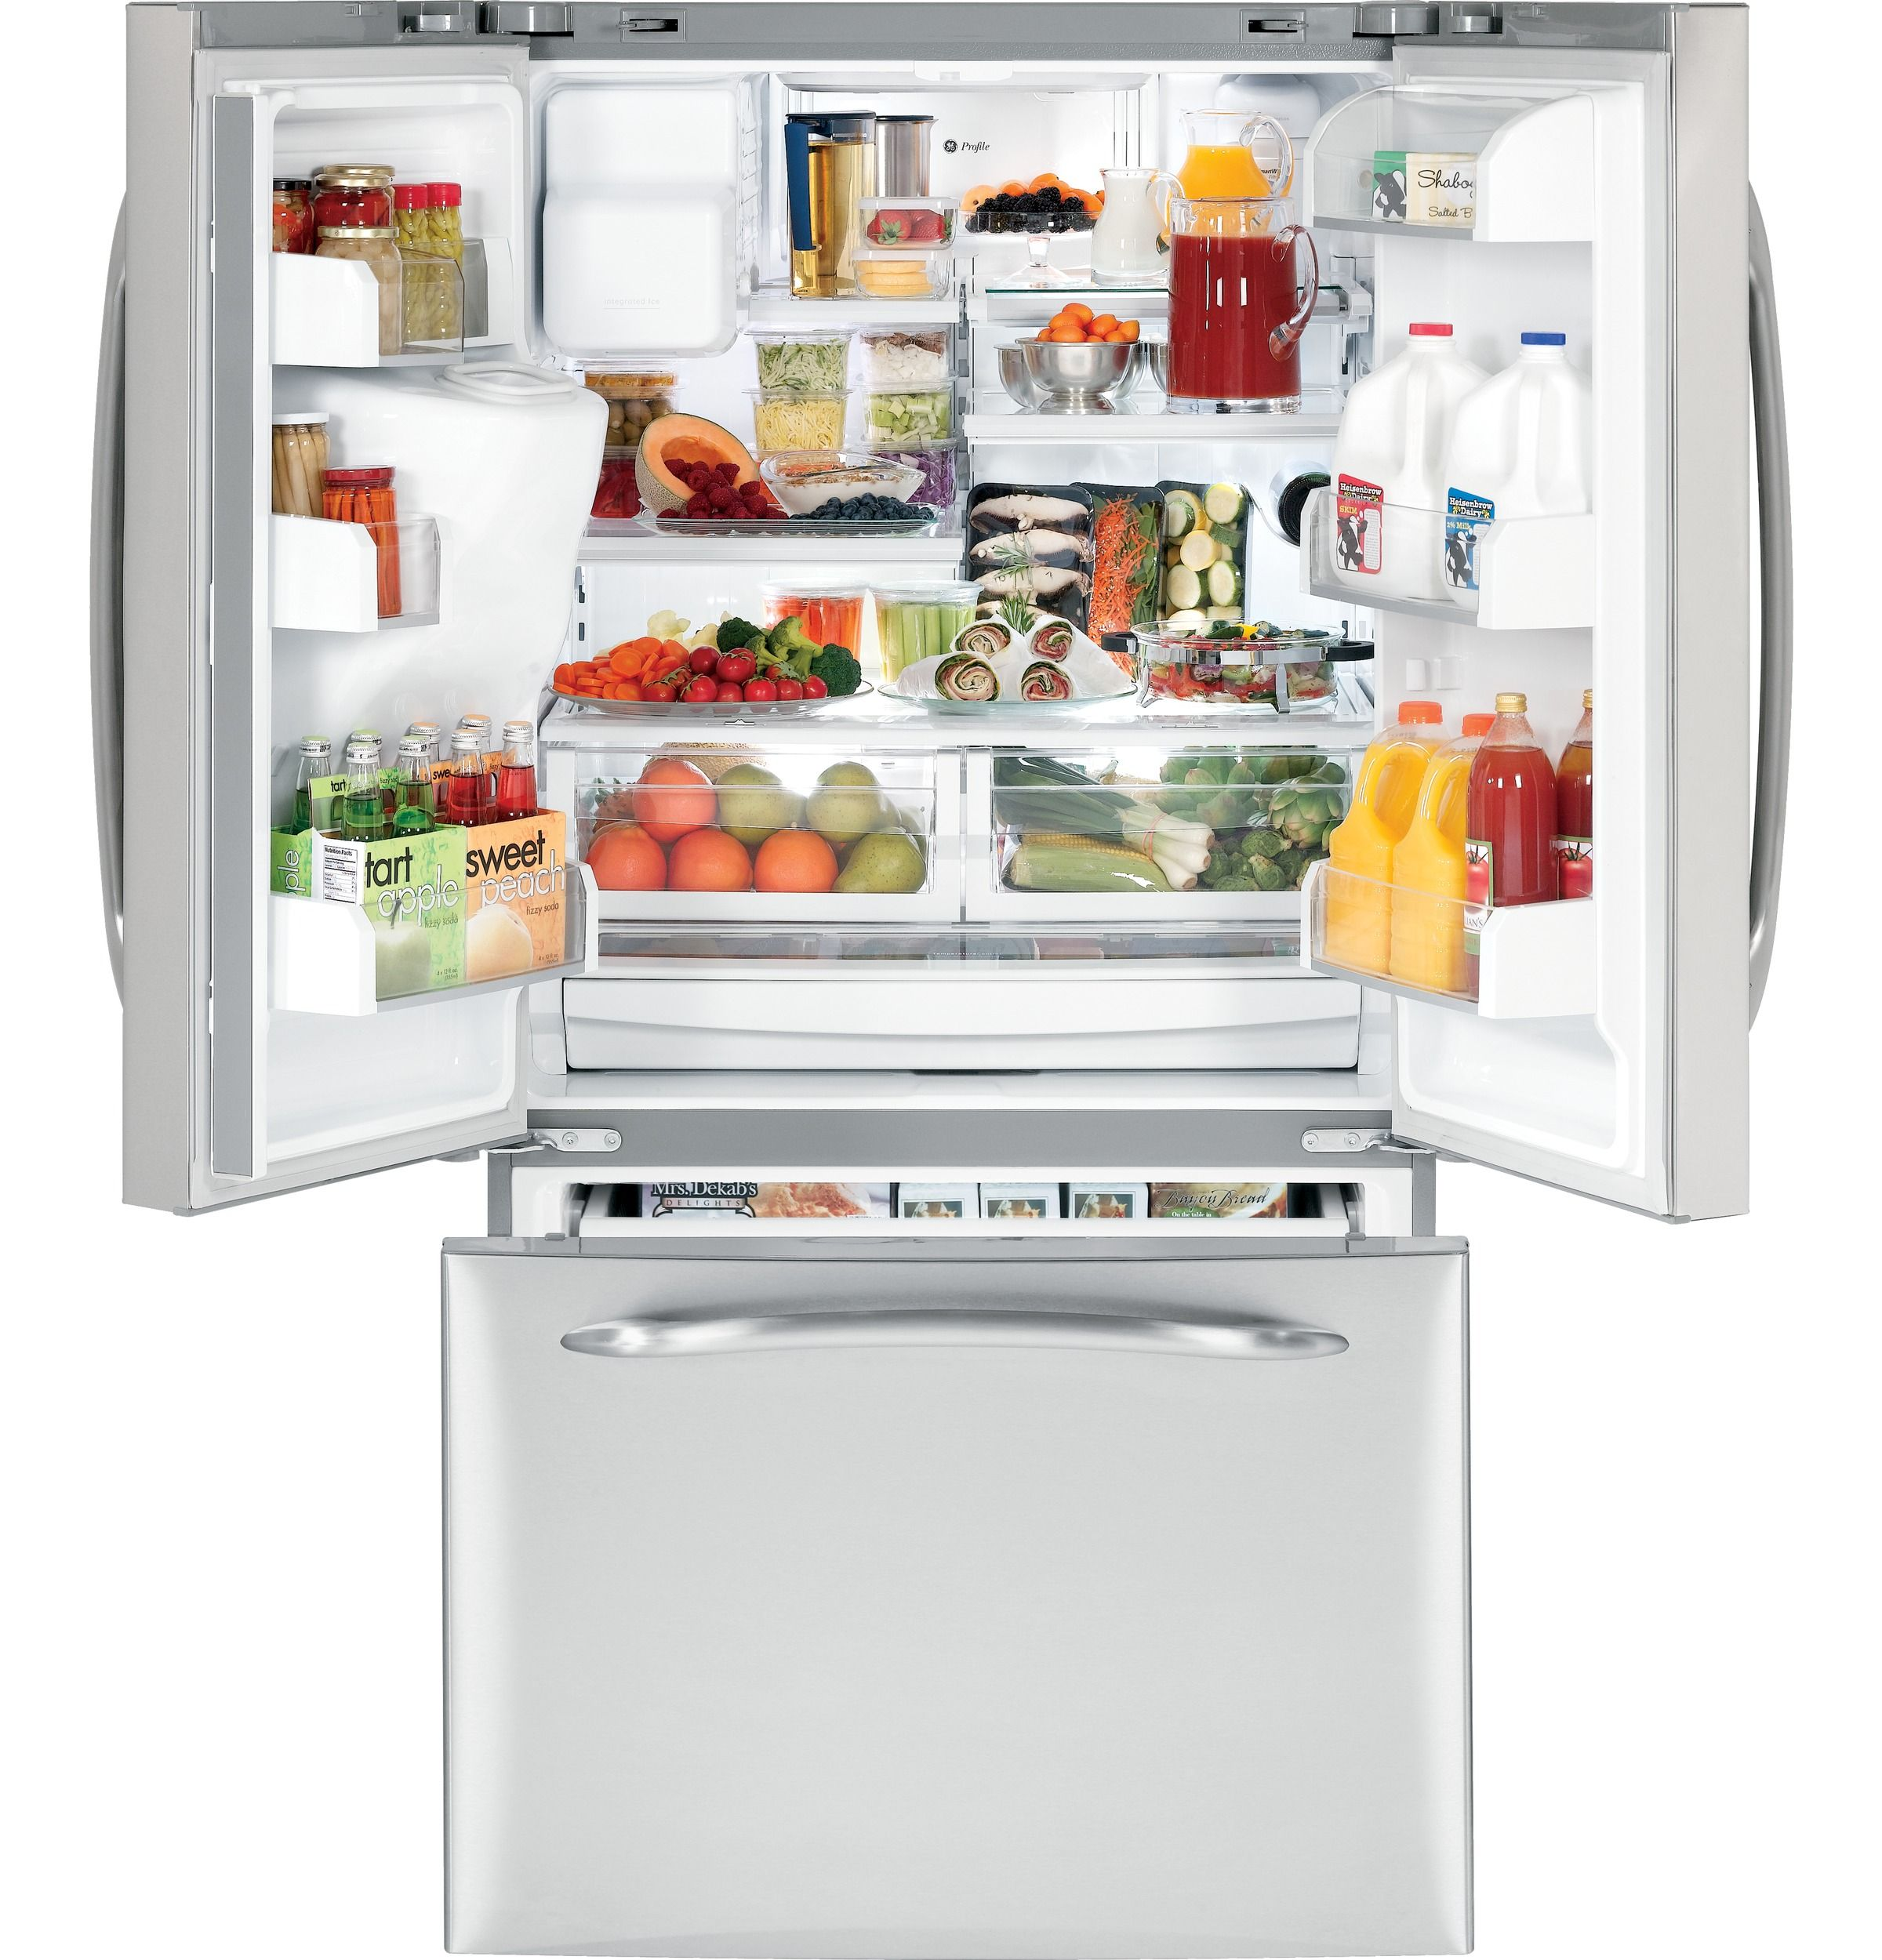 Pfss9skyss Ge Profile Energy Star 28 5 Cu Ft French Door Refrigerator Ge Appliances Ne French Door Refrigerator Refrigerator Newly Remodeled Kitchens